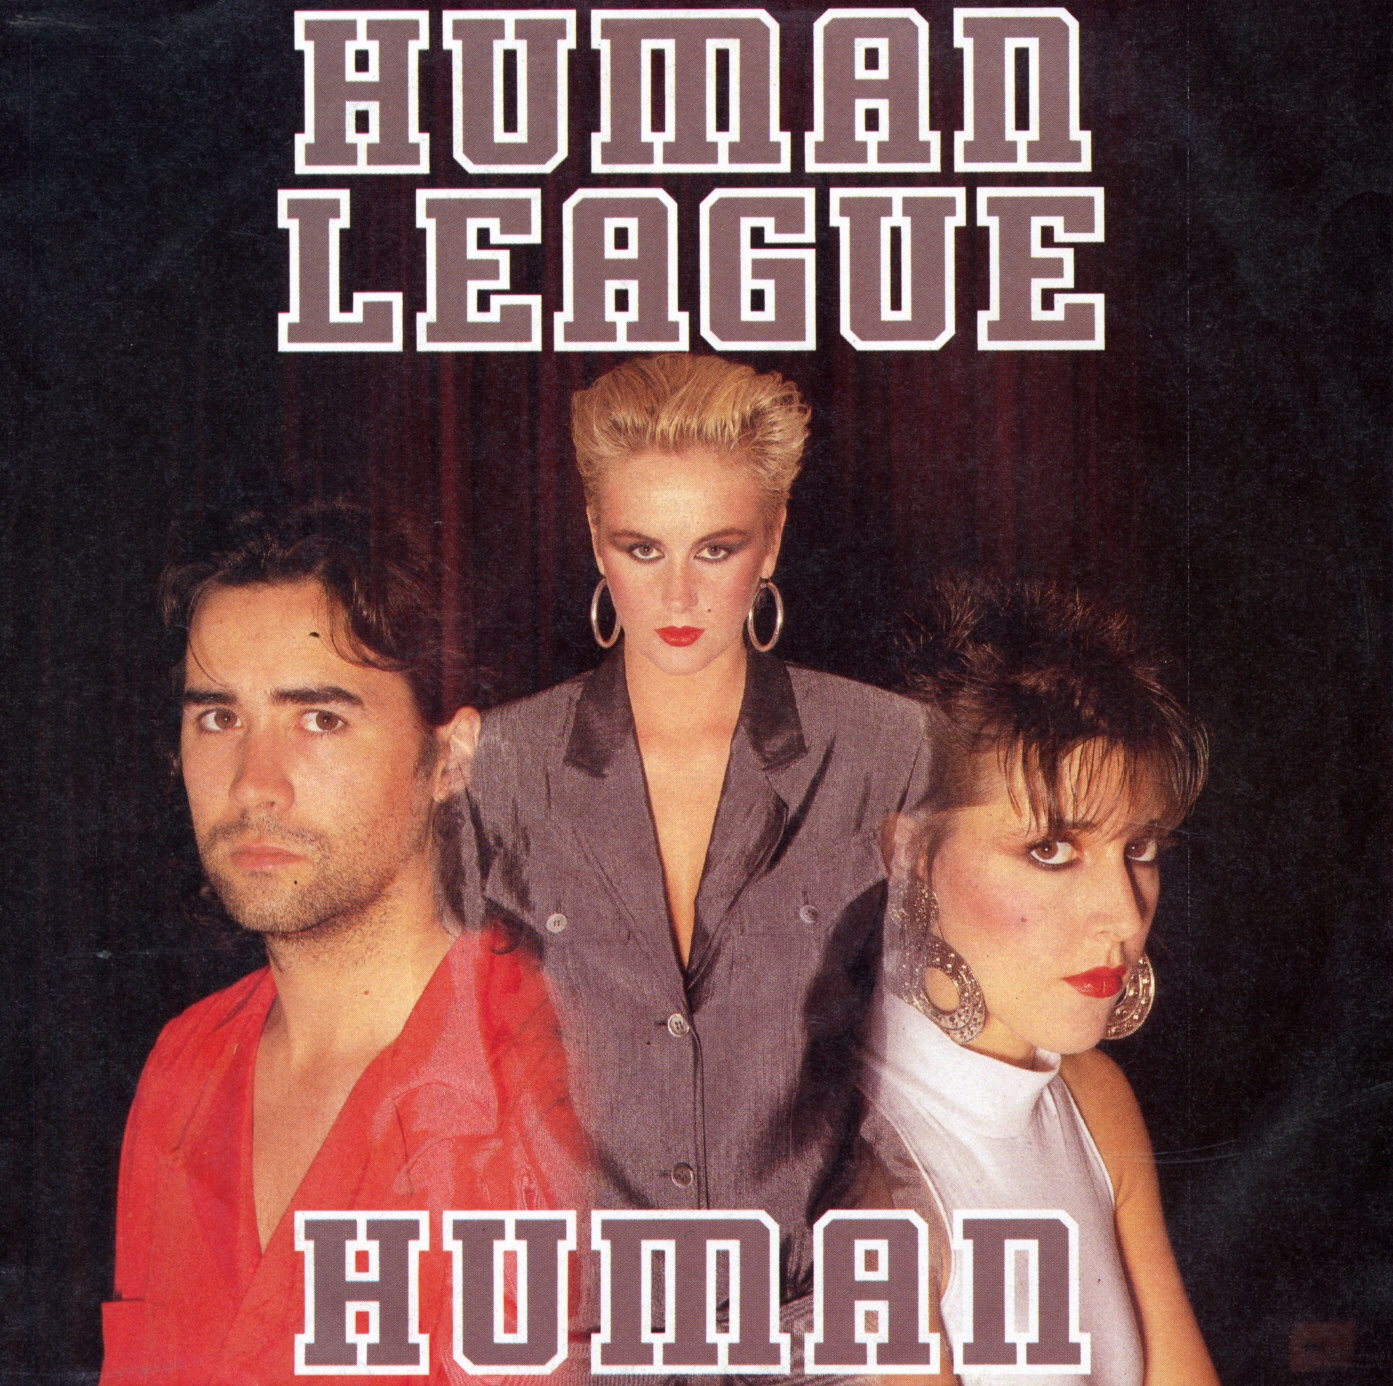 Cover: Human, The Human League